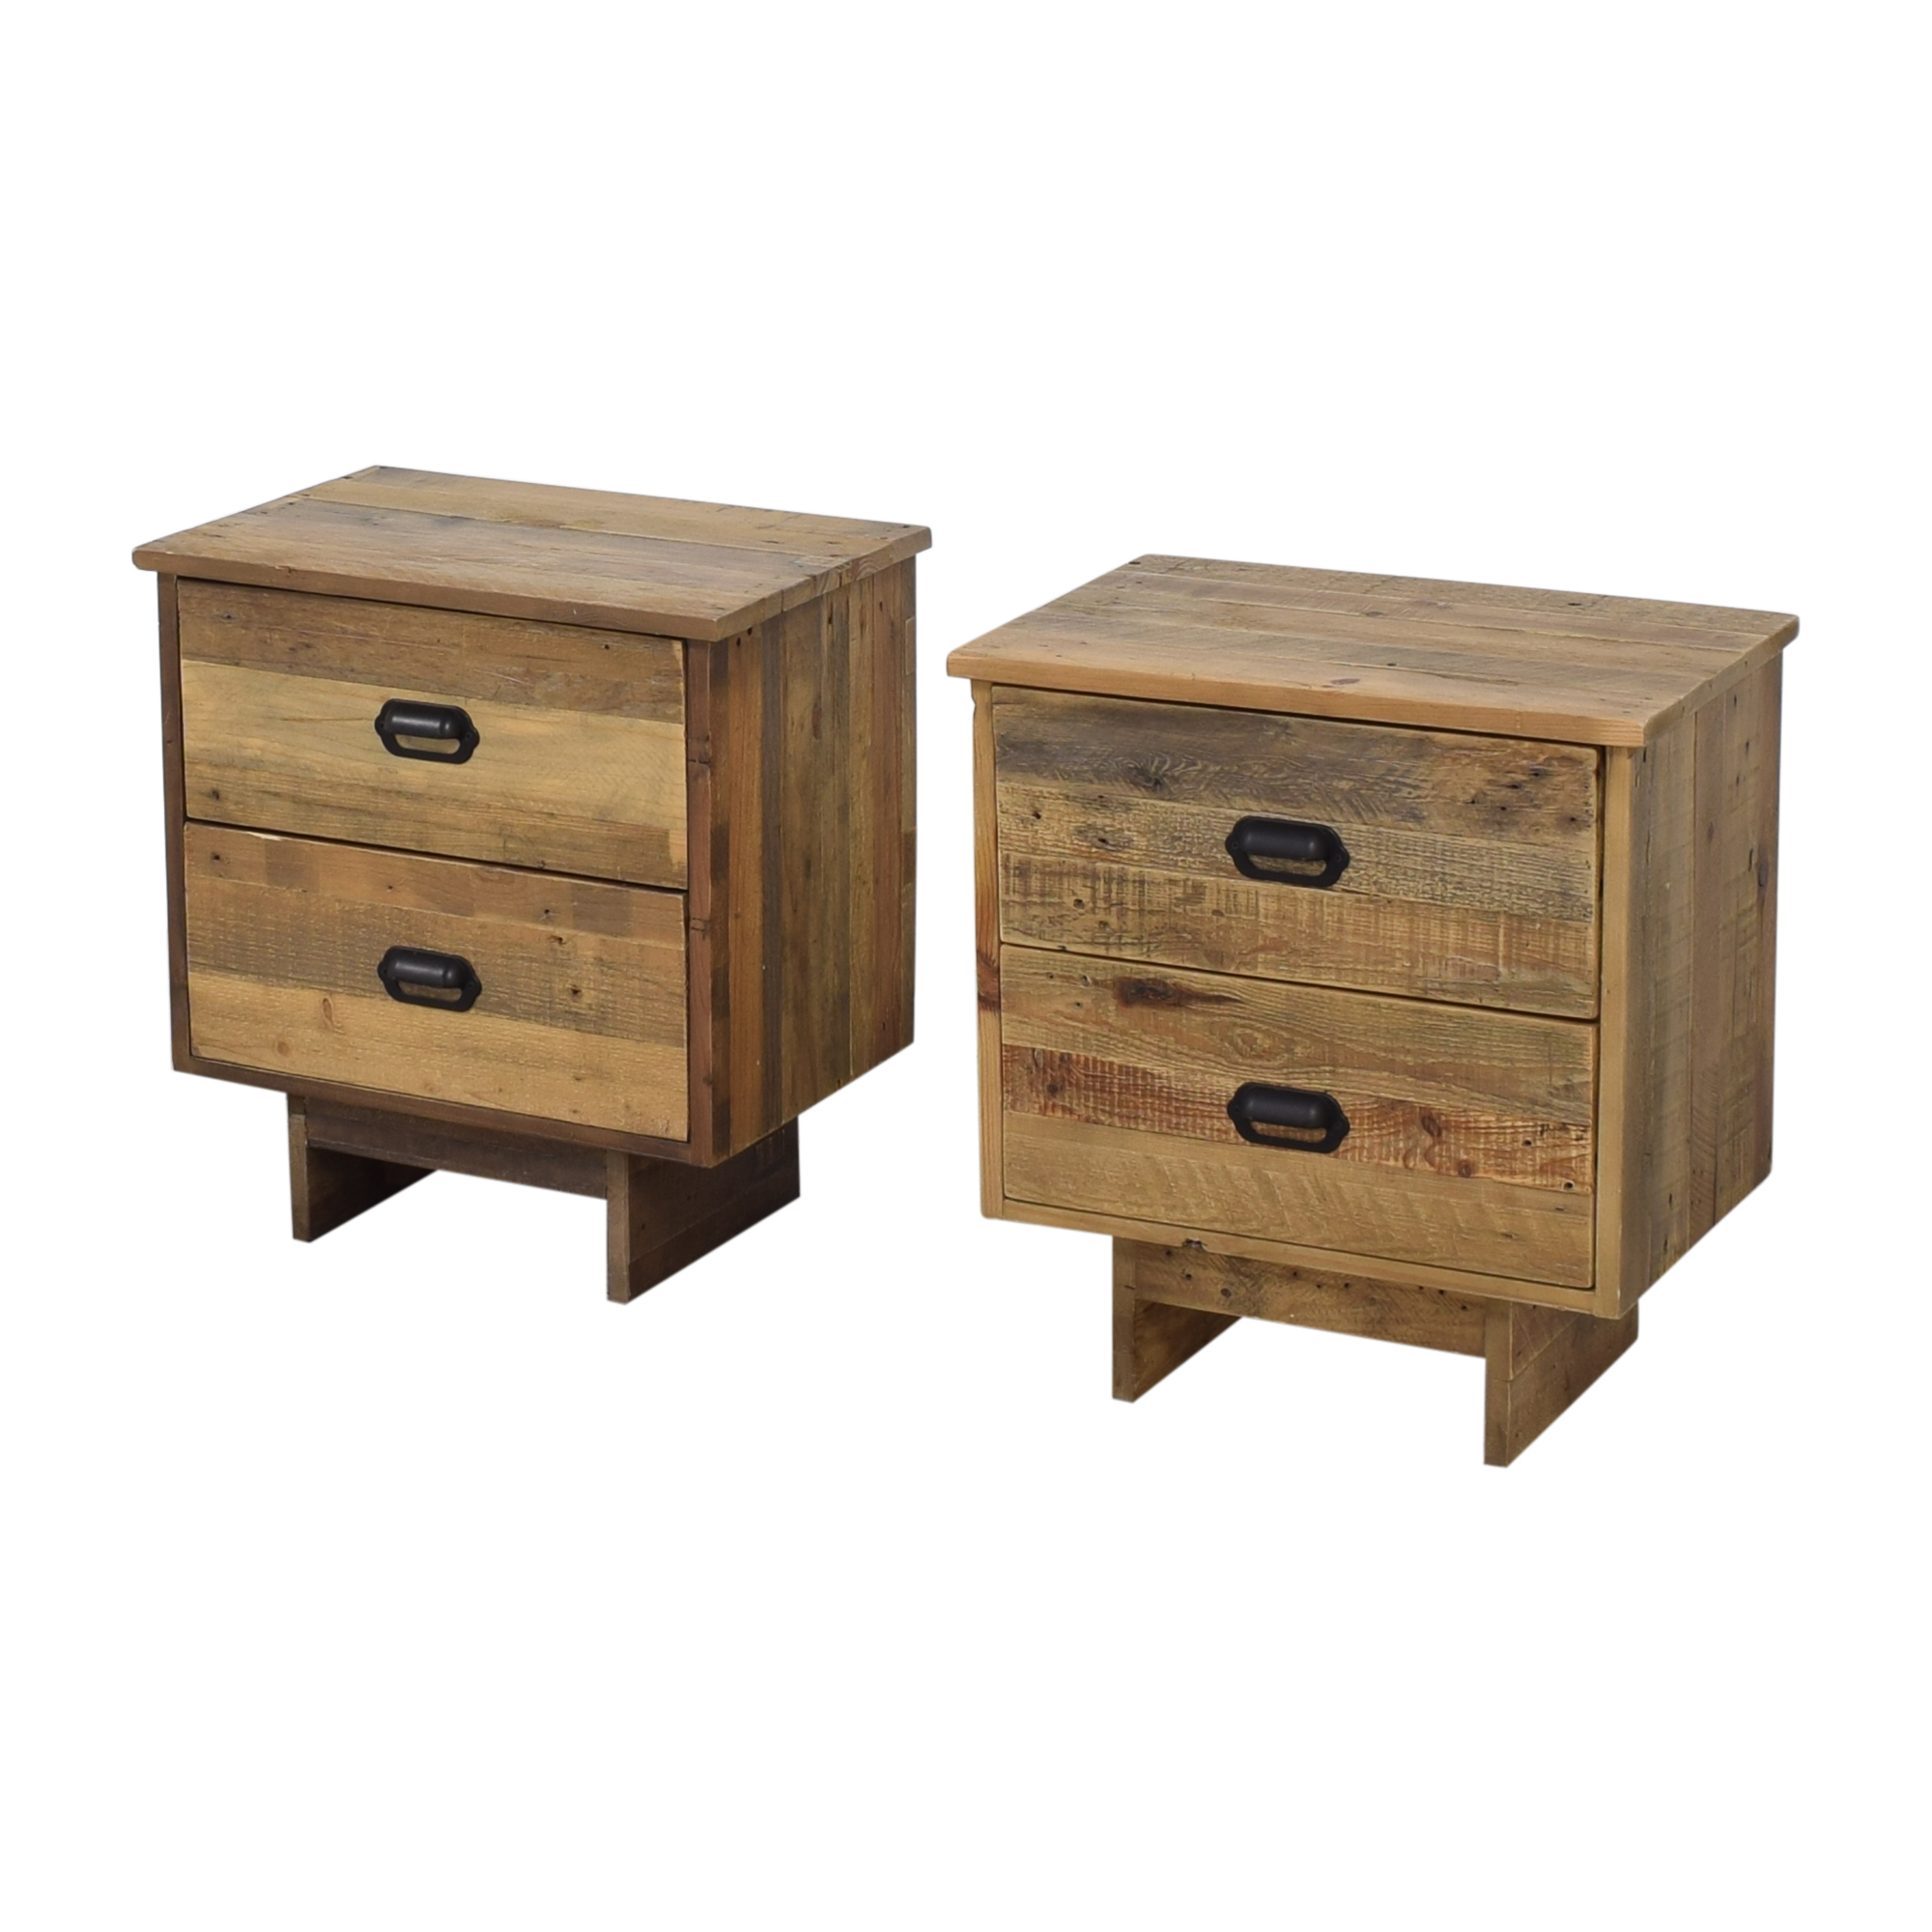 PGT Reclaimed PGT Reclaimed Wood Nighstands End Tables